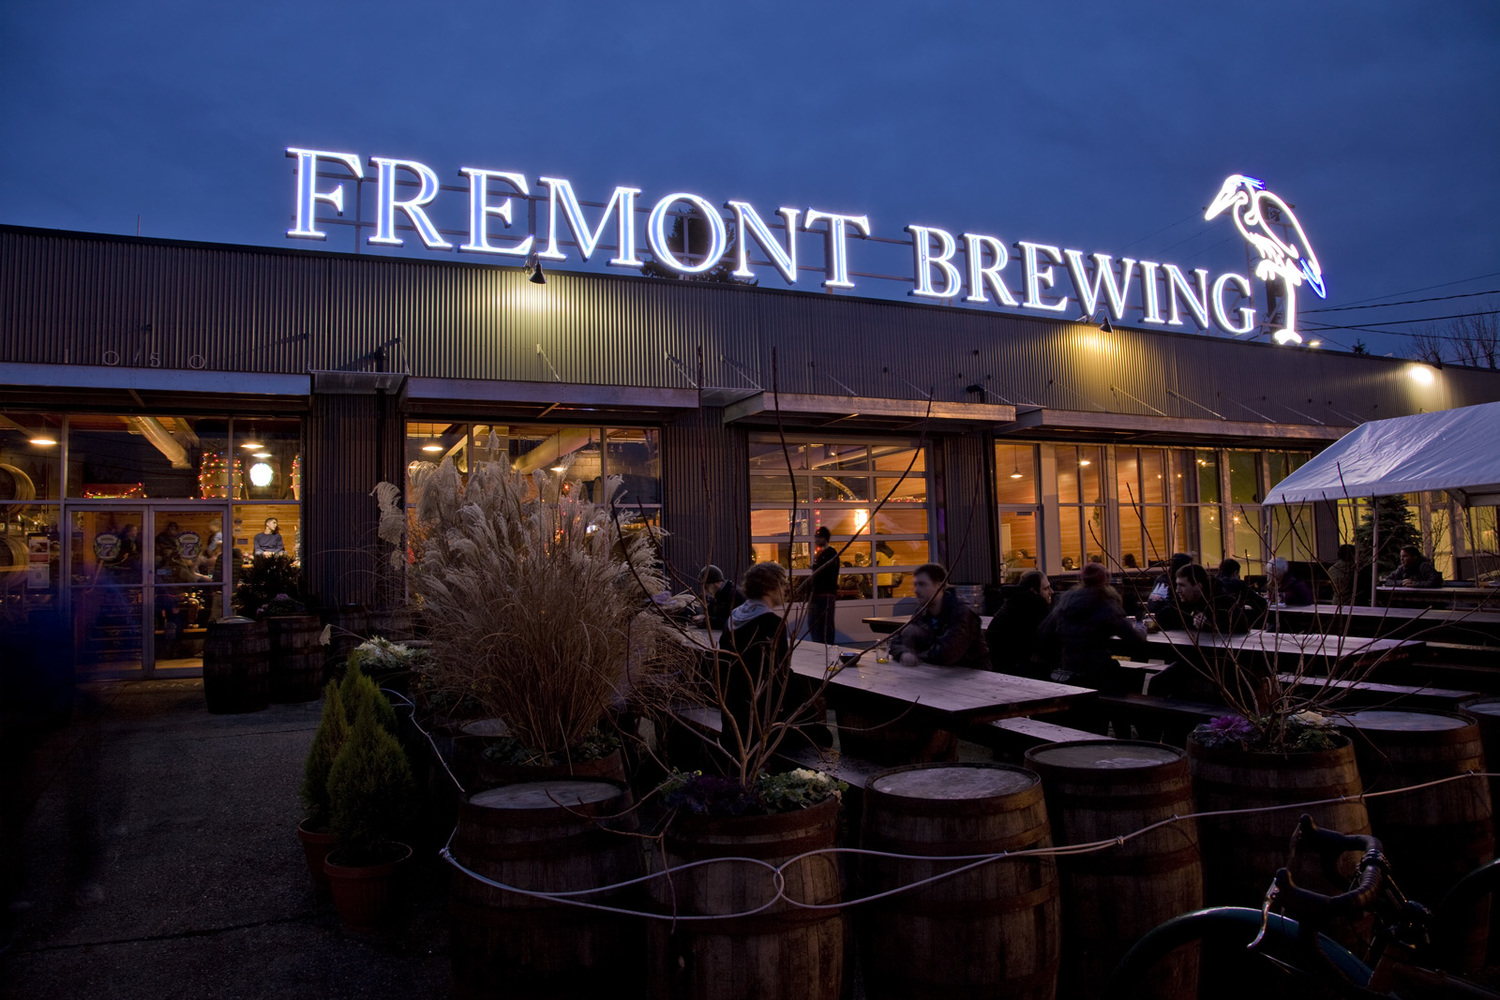 Contact Fremont Brewing